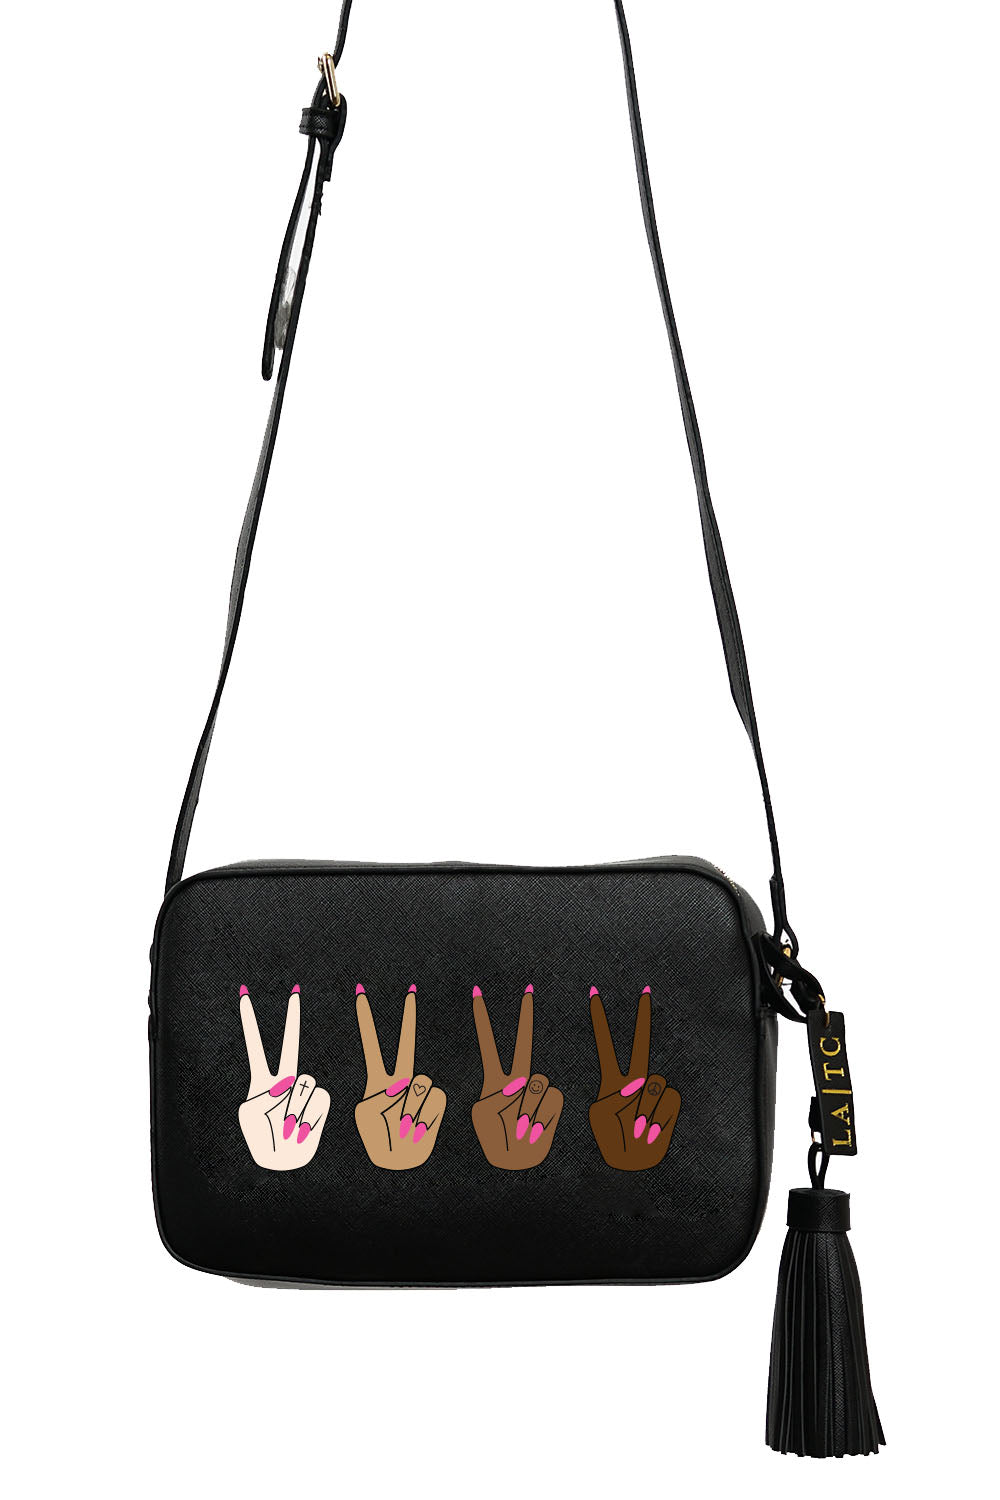 VEGAN CROSSBODY BAG - Pray For Peace